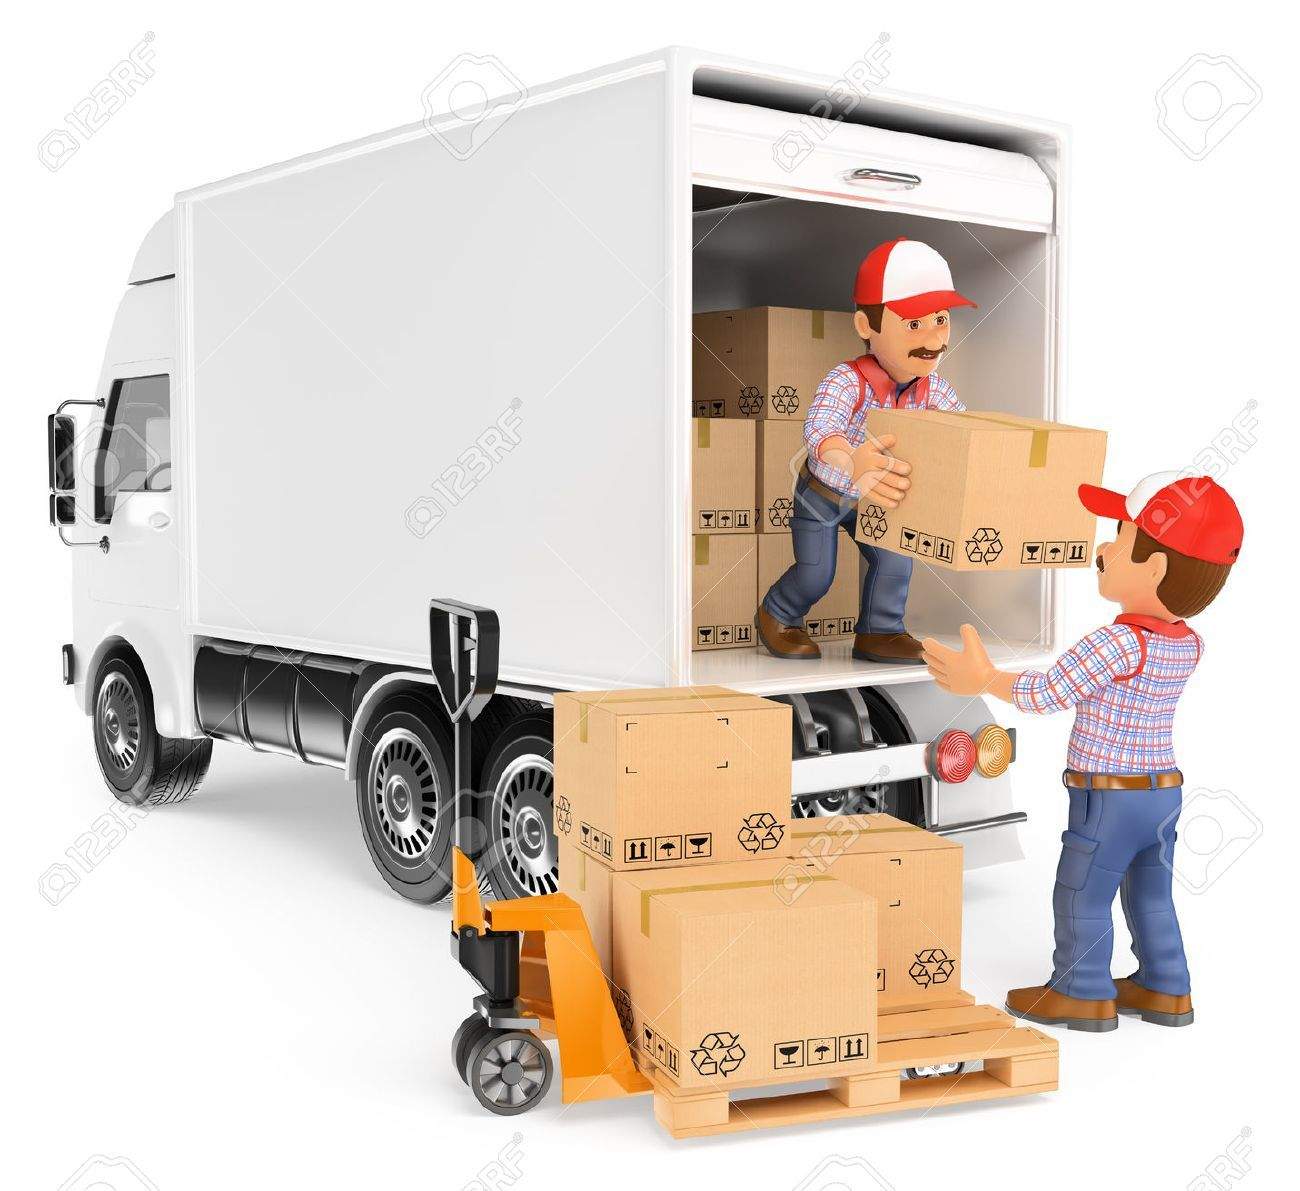 Packers and Movers Hyderabad Serving Best Household and Commercial Goods Relocation Services